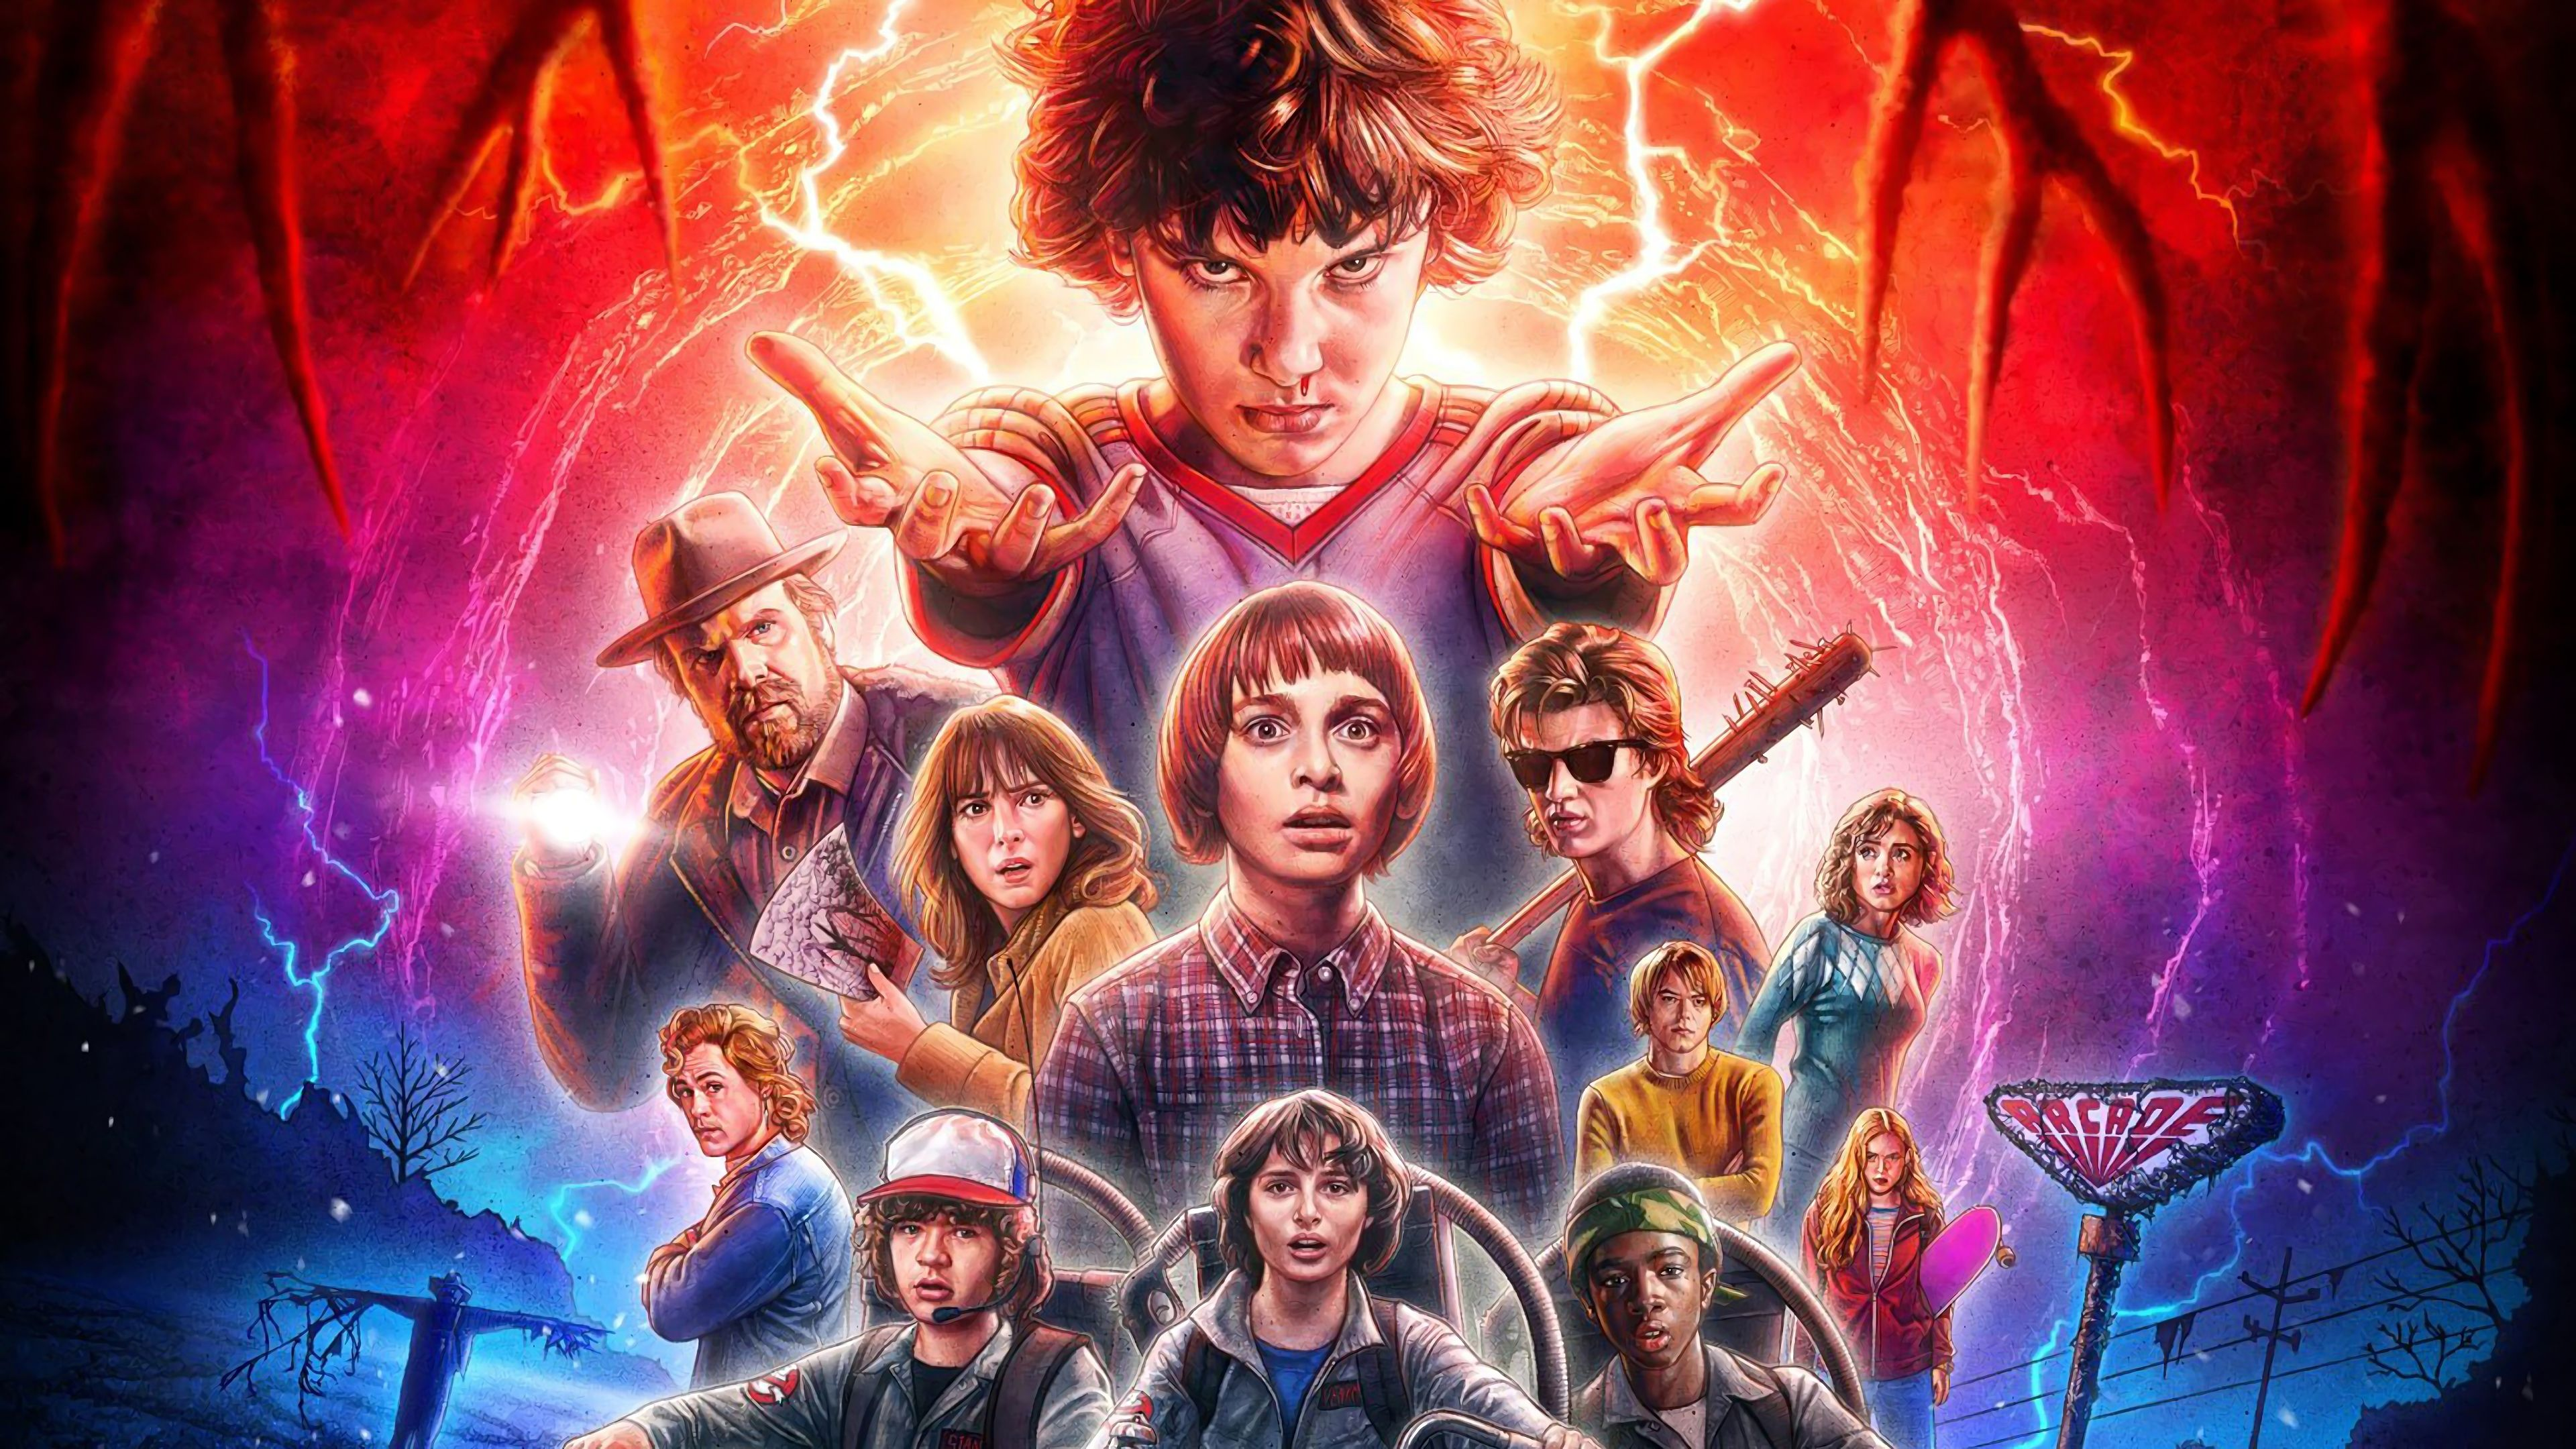 Stranger Things Season 2 Wallpapers Top Free Stranger Things